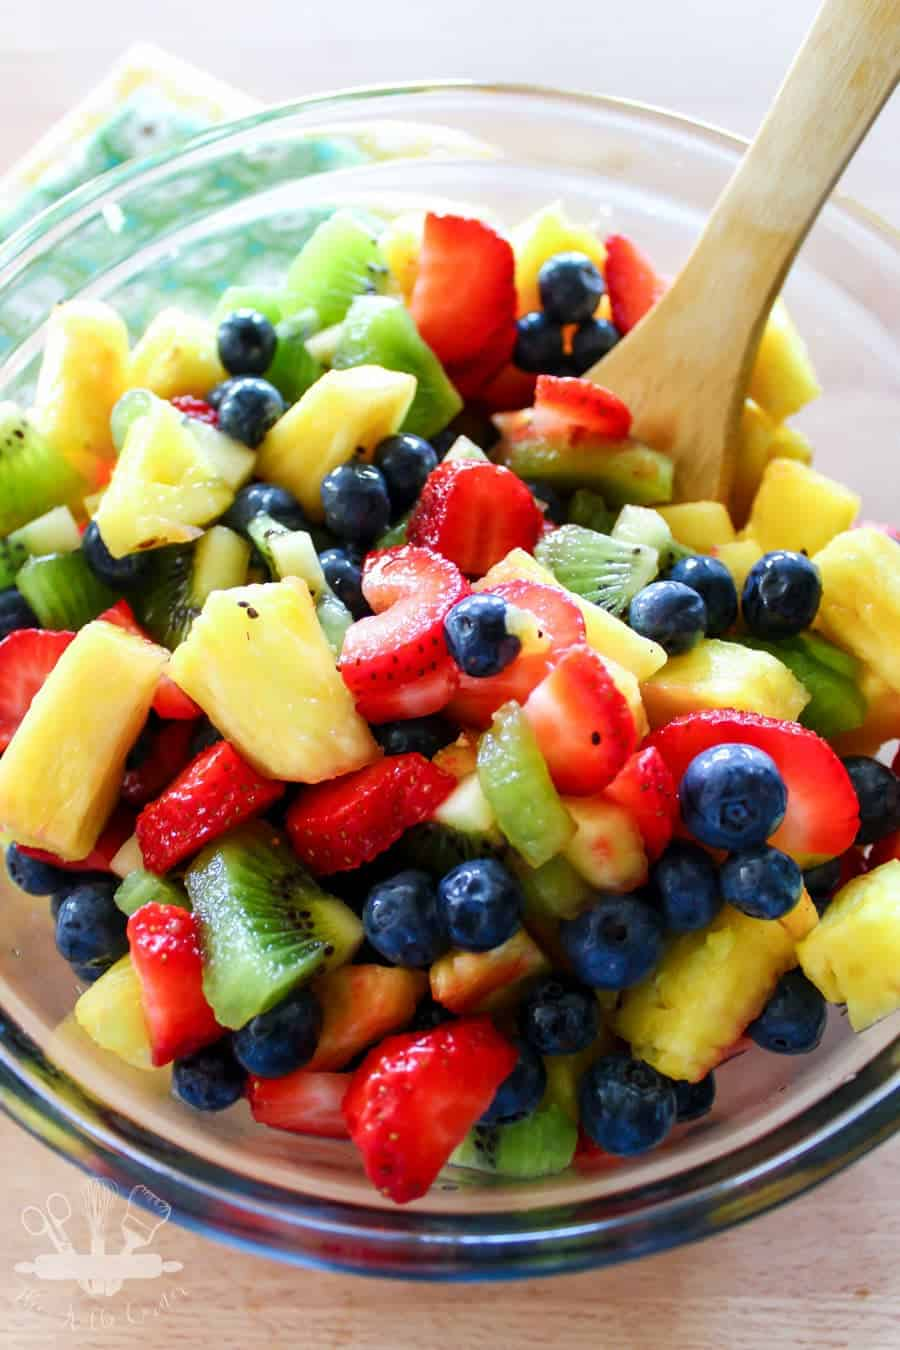 These fruit salad recipes are THE BEST! I am so glad I found these AMAZING easy & delicious summer fruit salad recipes. Now I will be saving time and money in the kitchen whipping up a healthy dessert for a crowd. Definitely pinning!